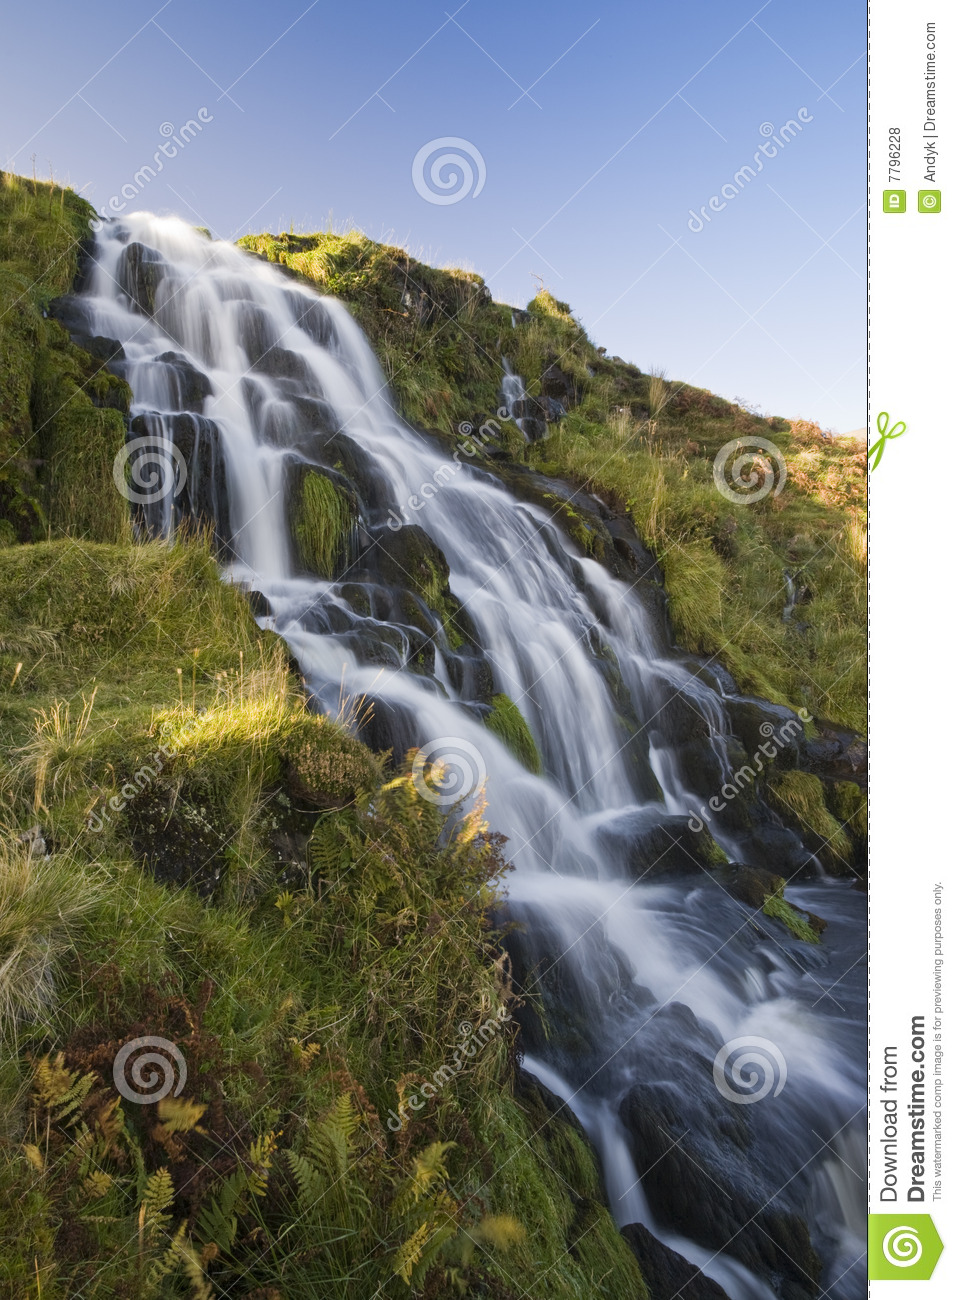 Waterfall flowing down hill with blue sky